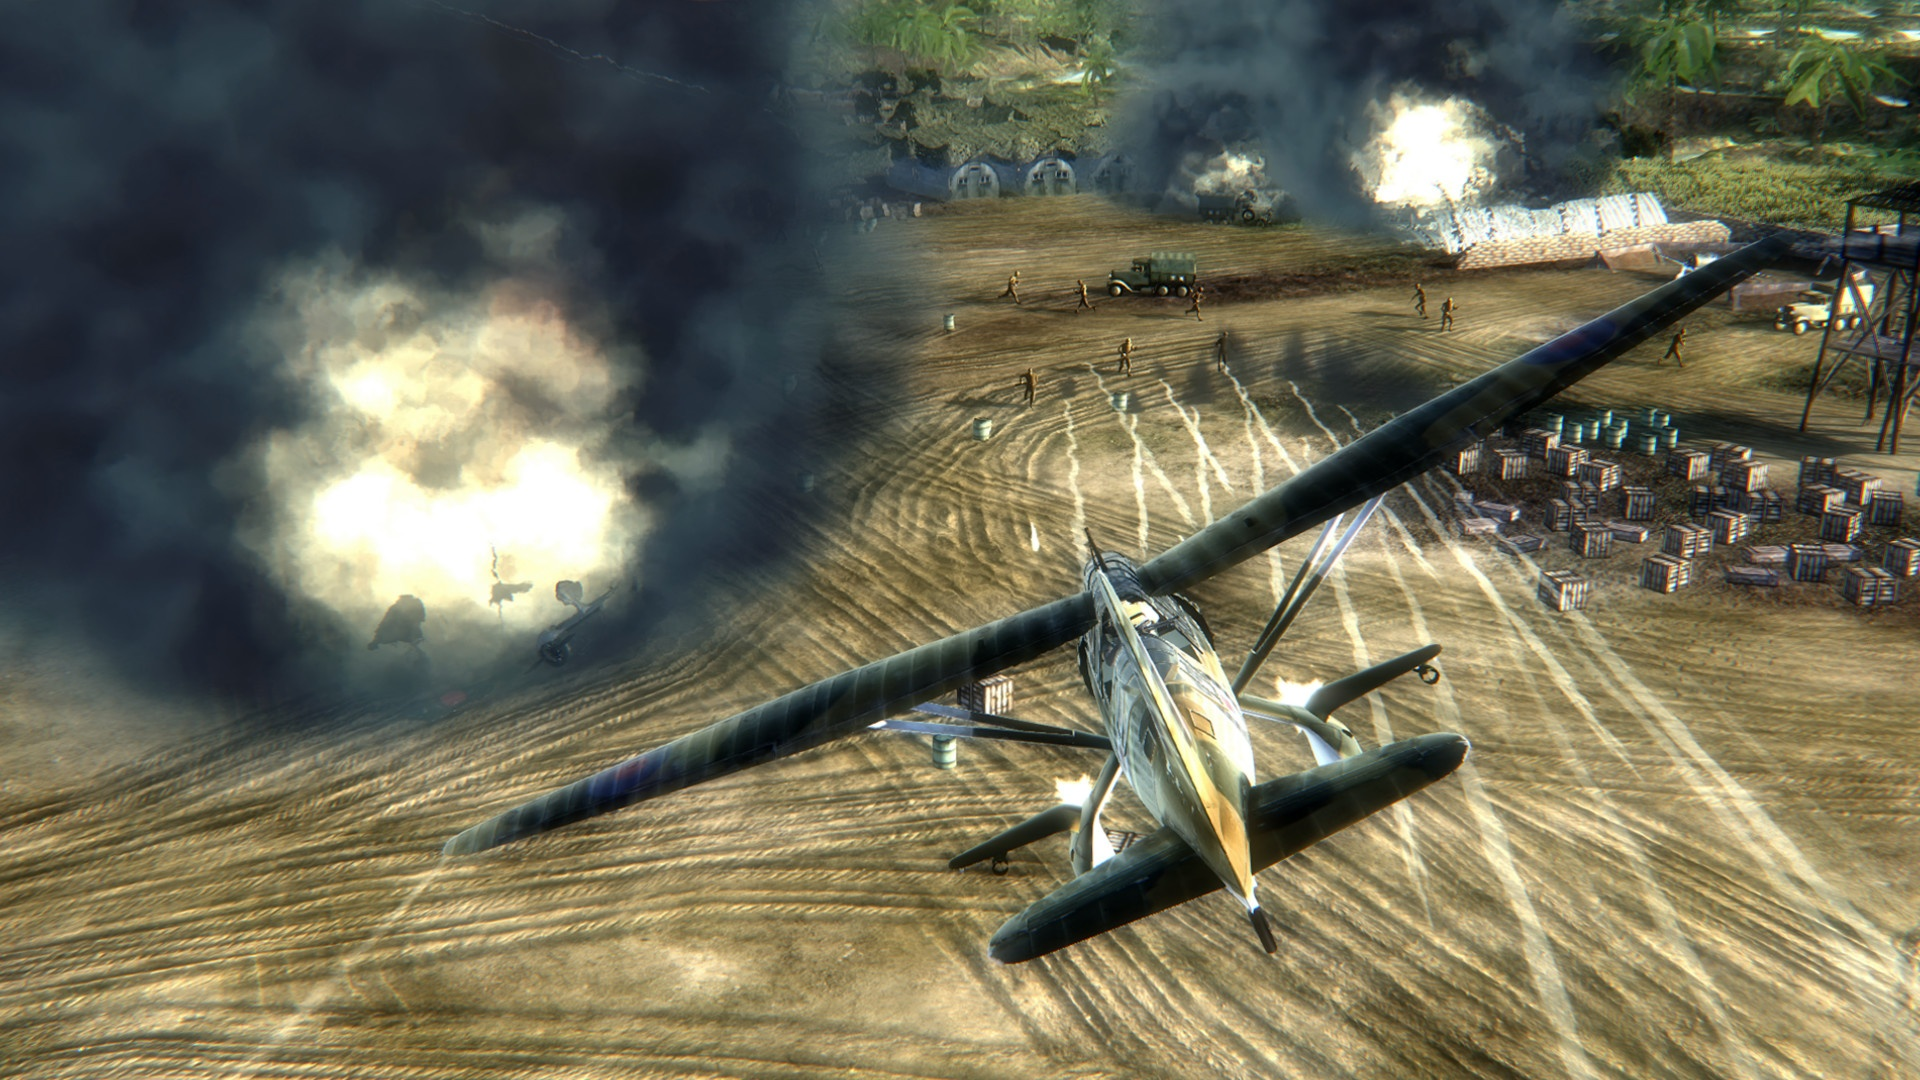 Ace Maddox, Action, arcade, Combat, flight, Flight Simulation, Flying Tigers: Shadows Over China, indie, Rating 7/10, simulation, World War II, Xbox One, Xbox One Review